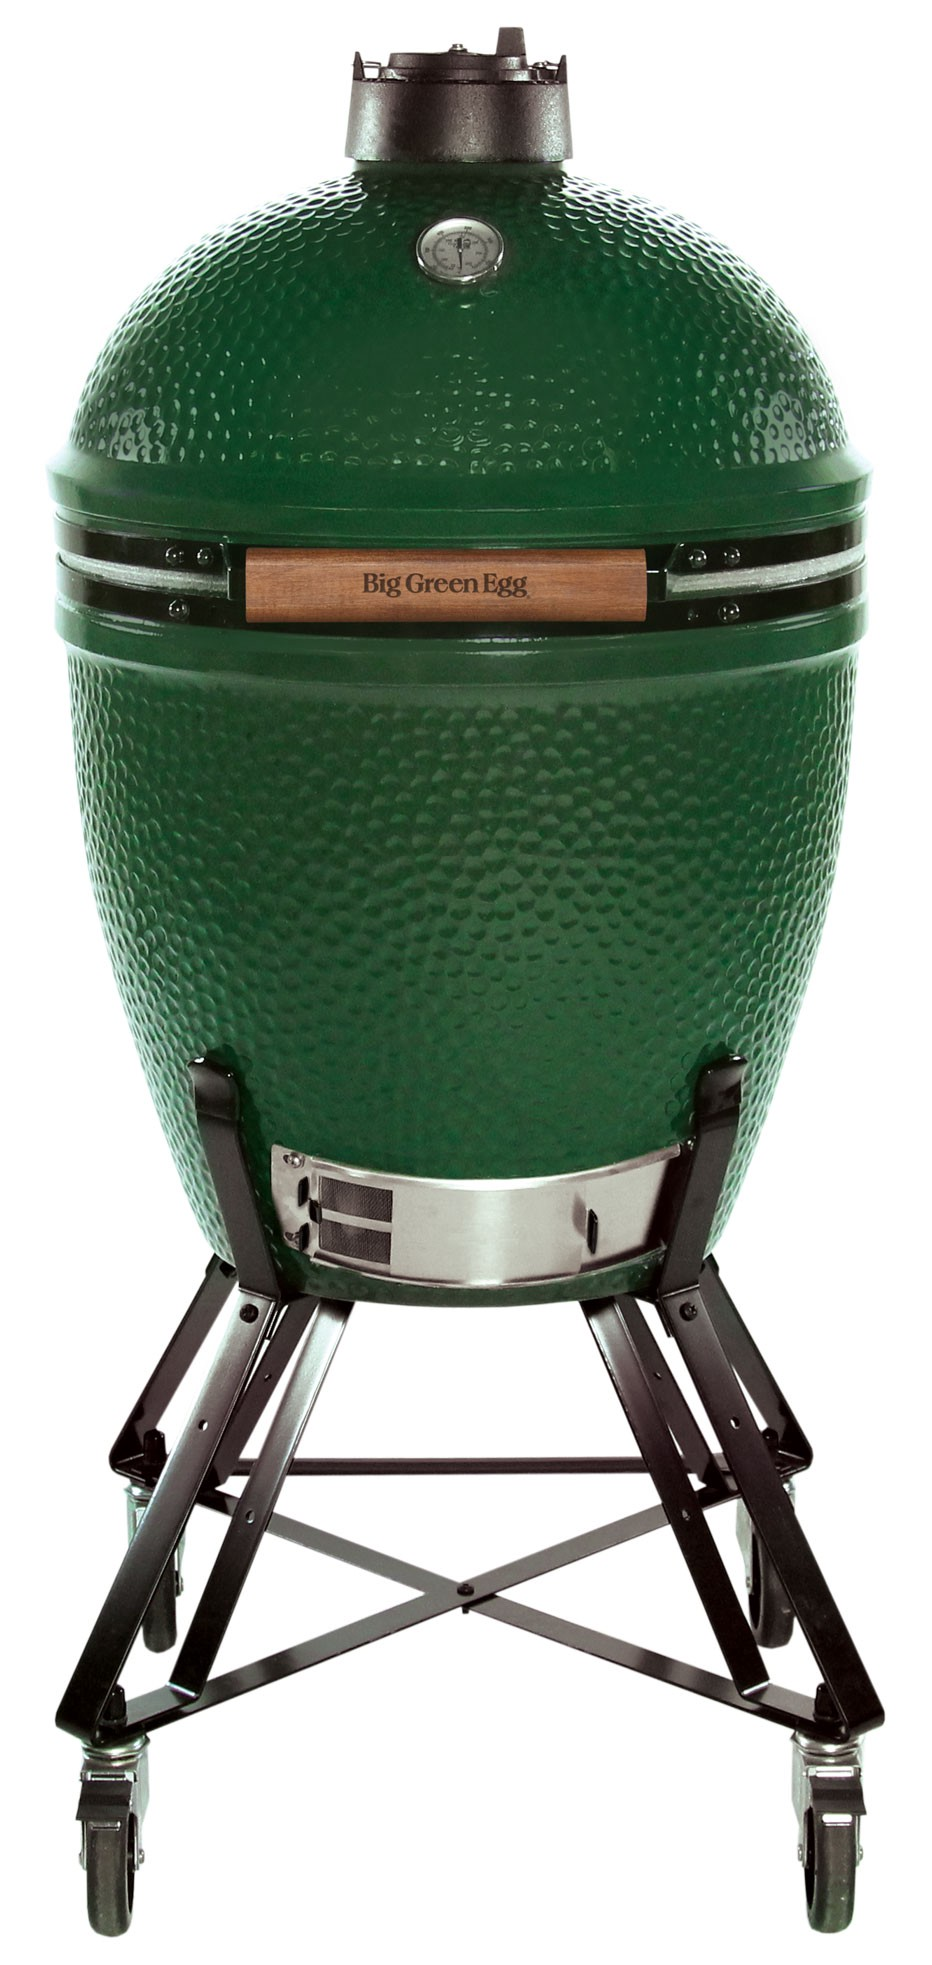 Ongebruikt A beginner's guide to Kamado cooking (Big Egg-style) on a budget UH-62